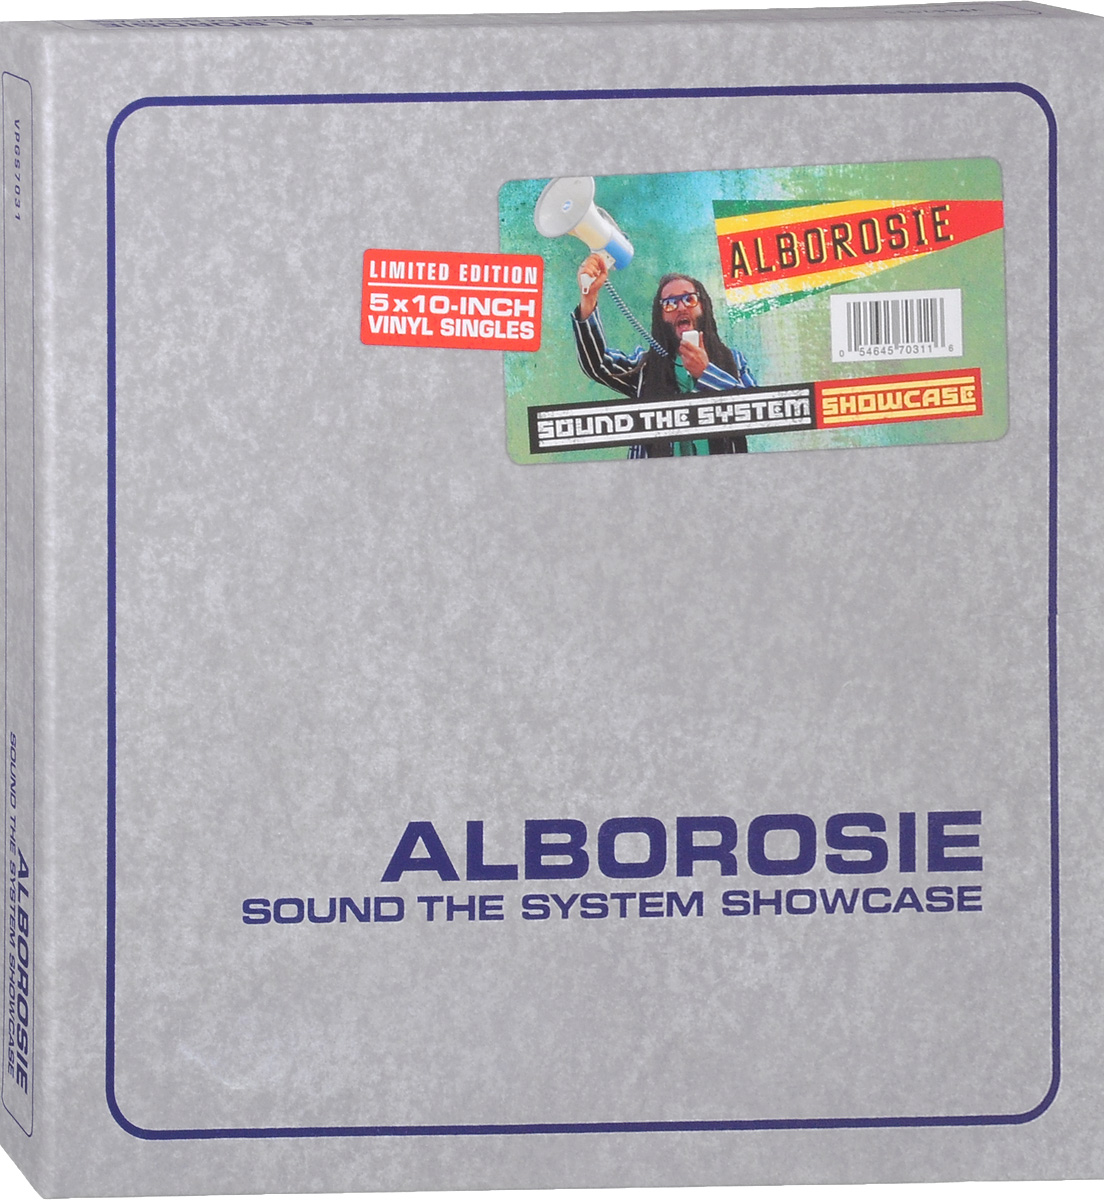 Alborosie Alborosie. Sound The System Showcase. Limited Edition (5 LP) парогенератор с бойлером philips gc9635 20